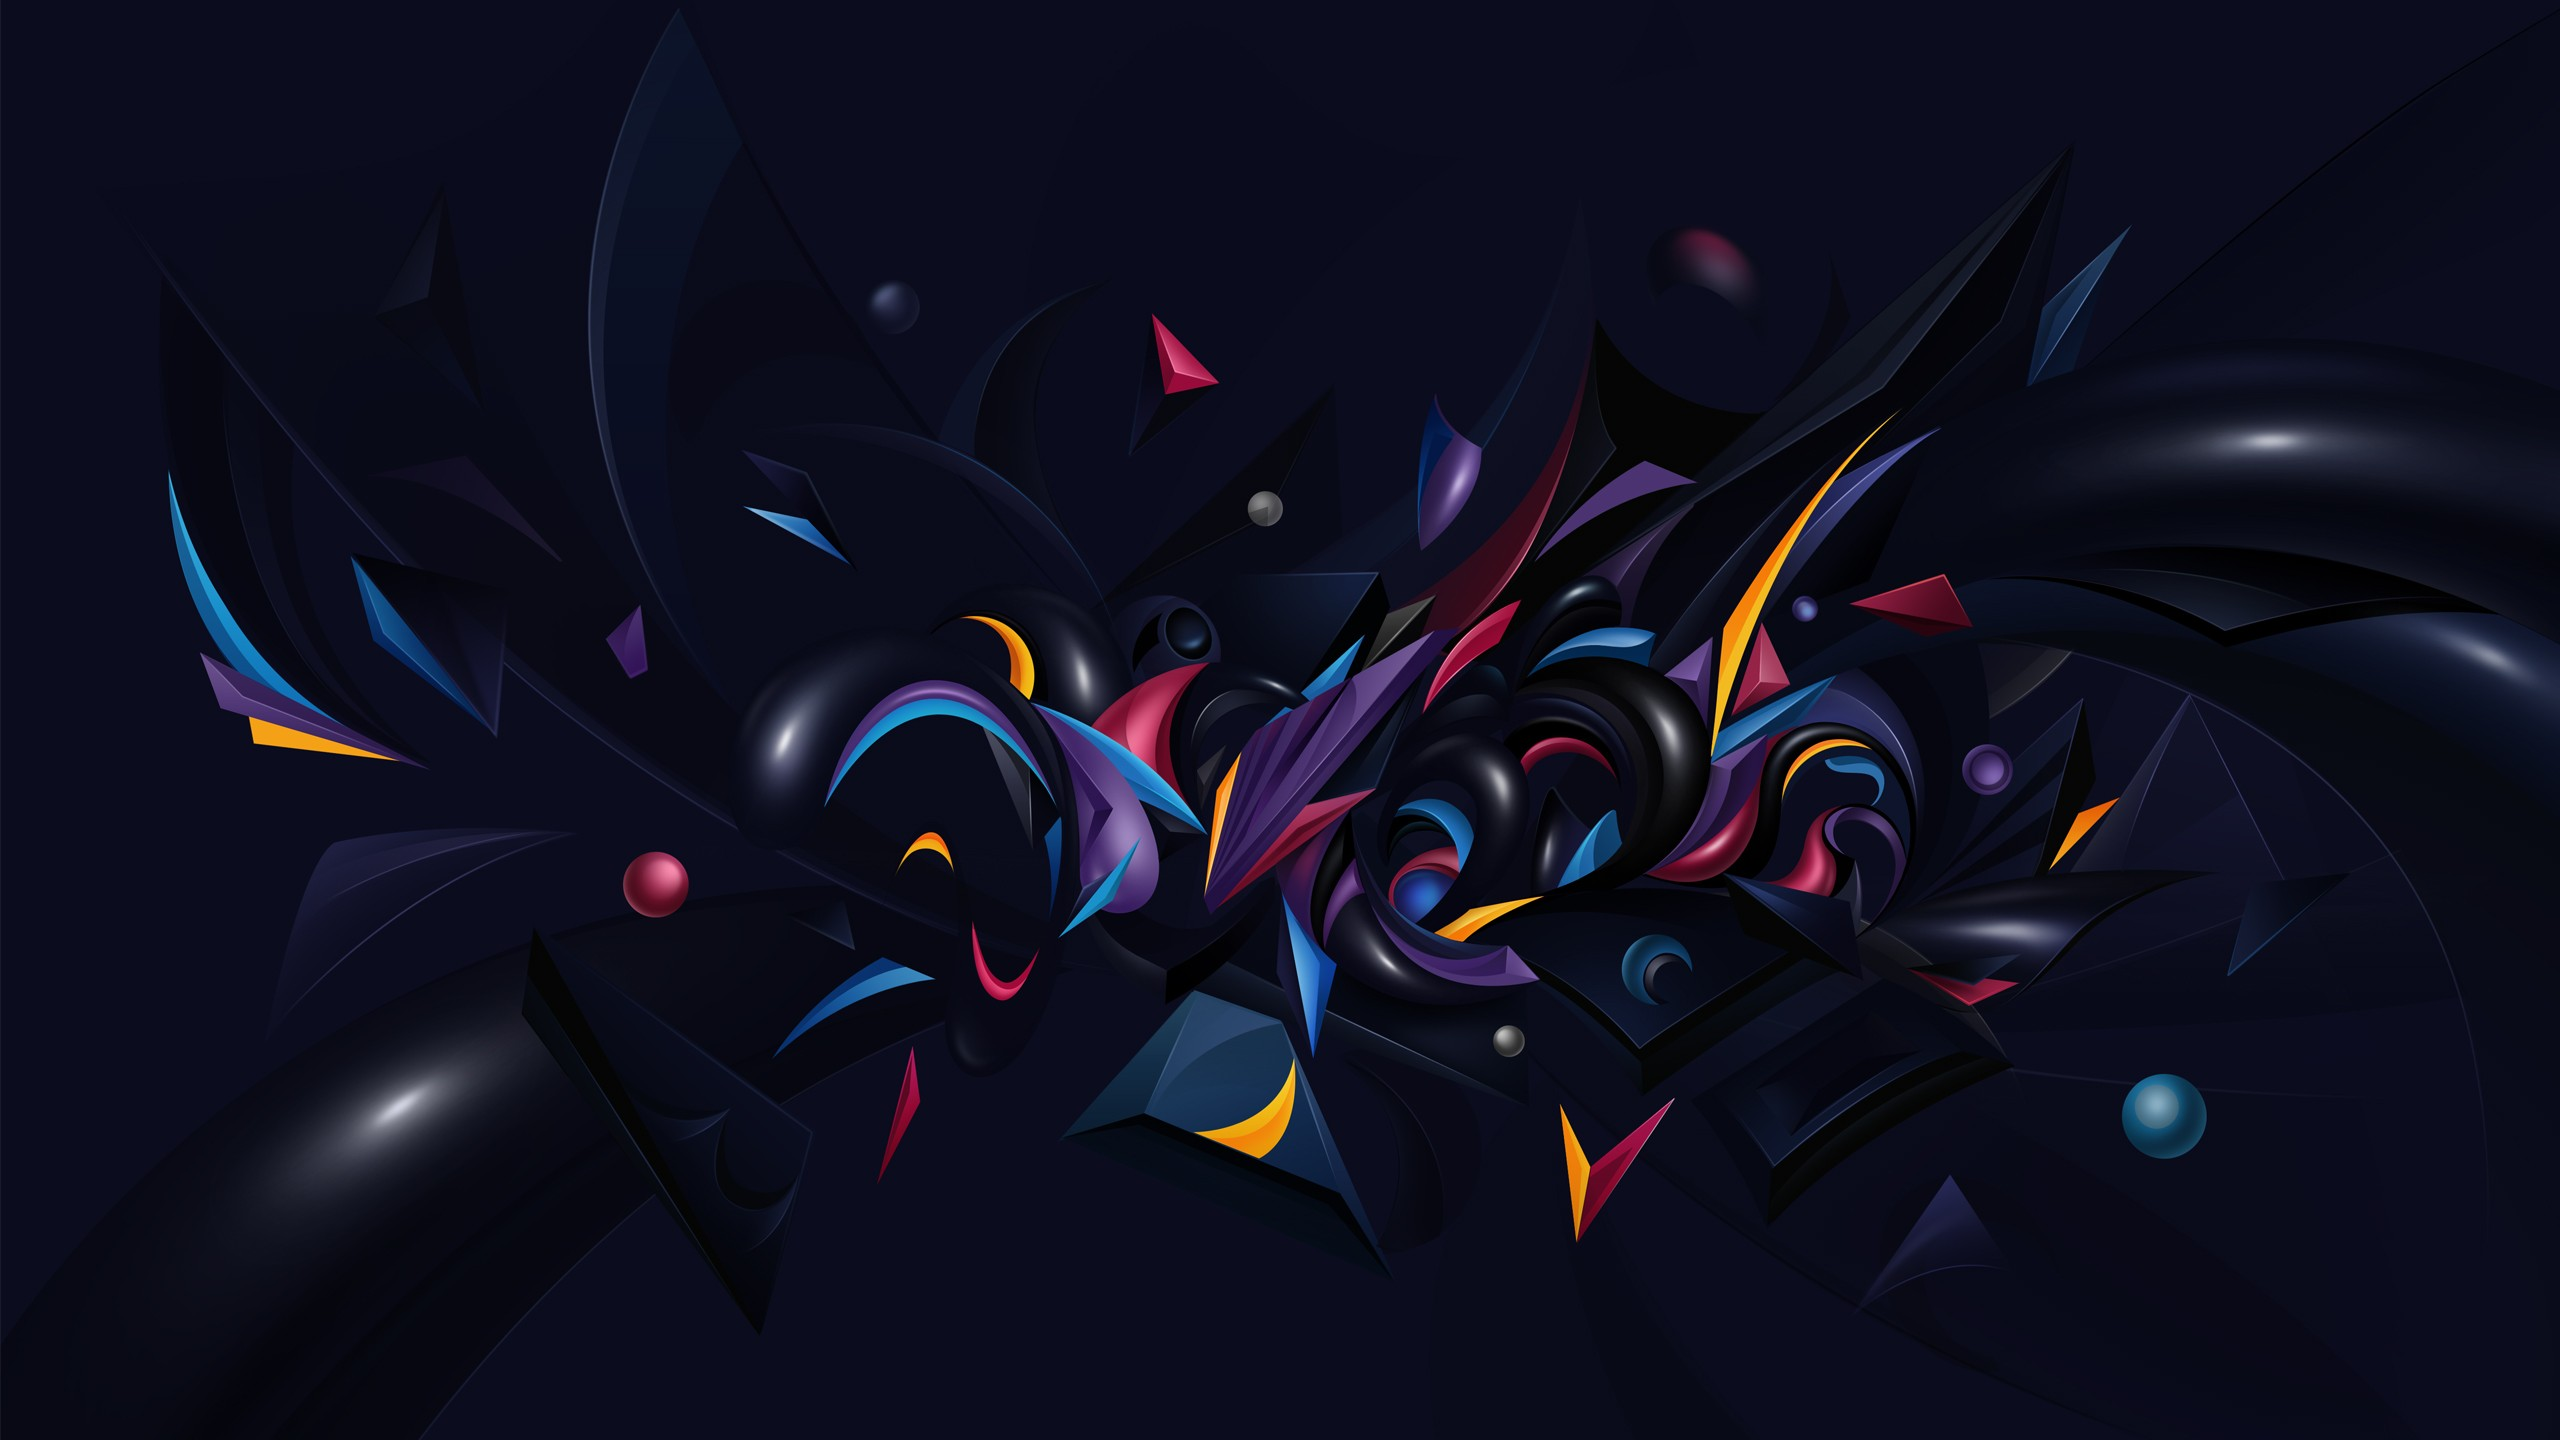 Iphone X Logo Wallpaper Abstract Chaos Wallpapers Hd Wallpapers Id 11483